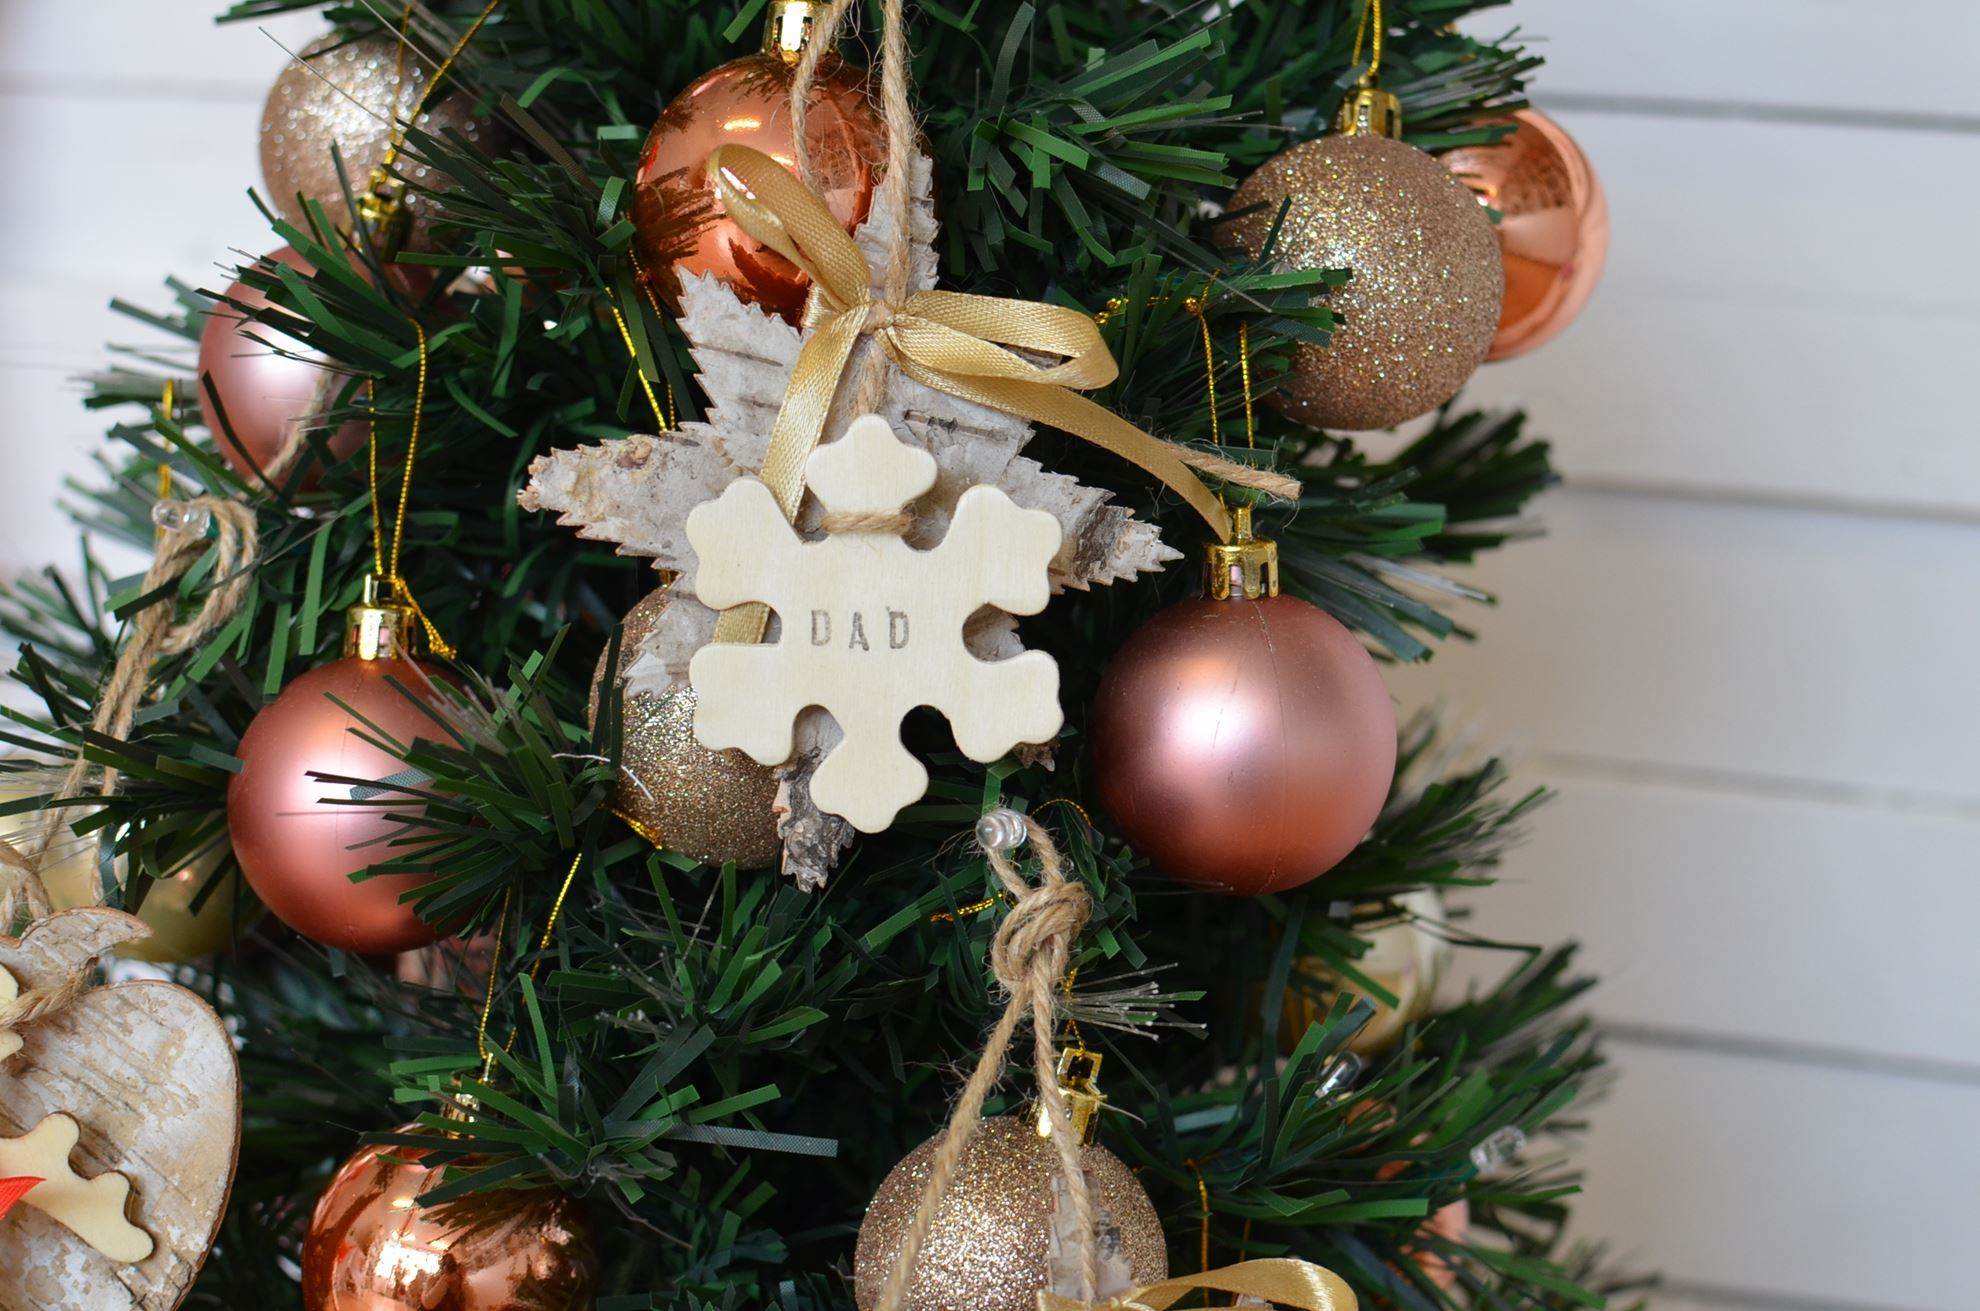 Personalized Christmas Decor.Personalized Christmas Tree Hanging Decorations Wooden Craft Snowflake